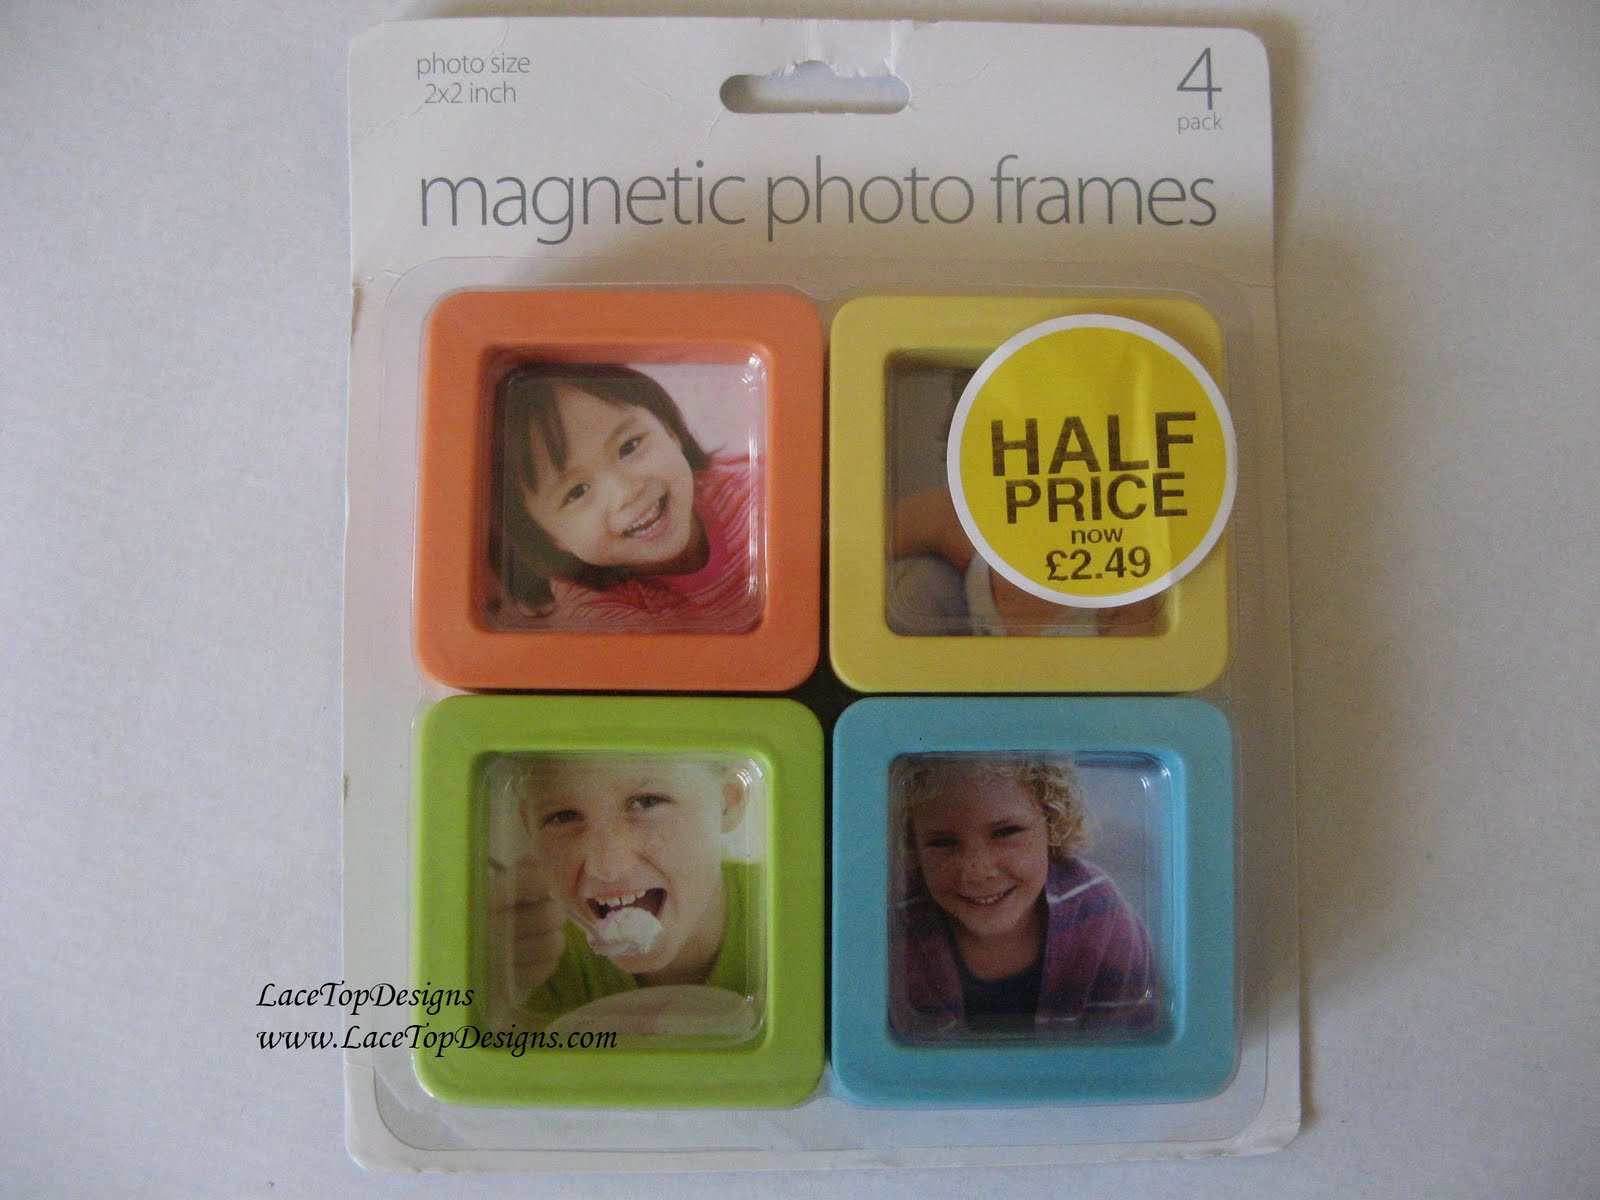 LaceTopDesigns: Photo Frame Fridge Magnet